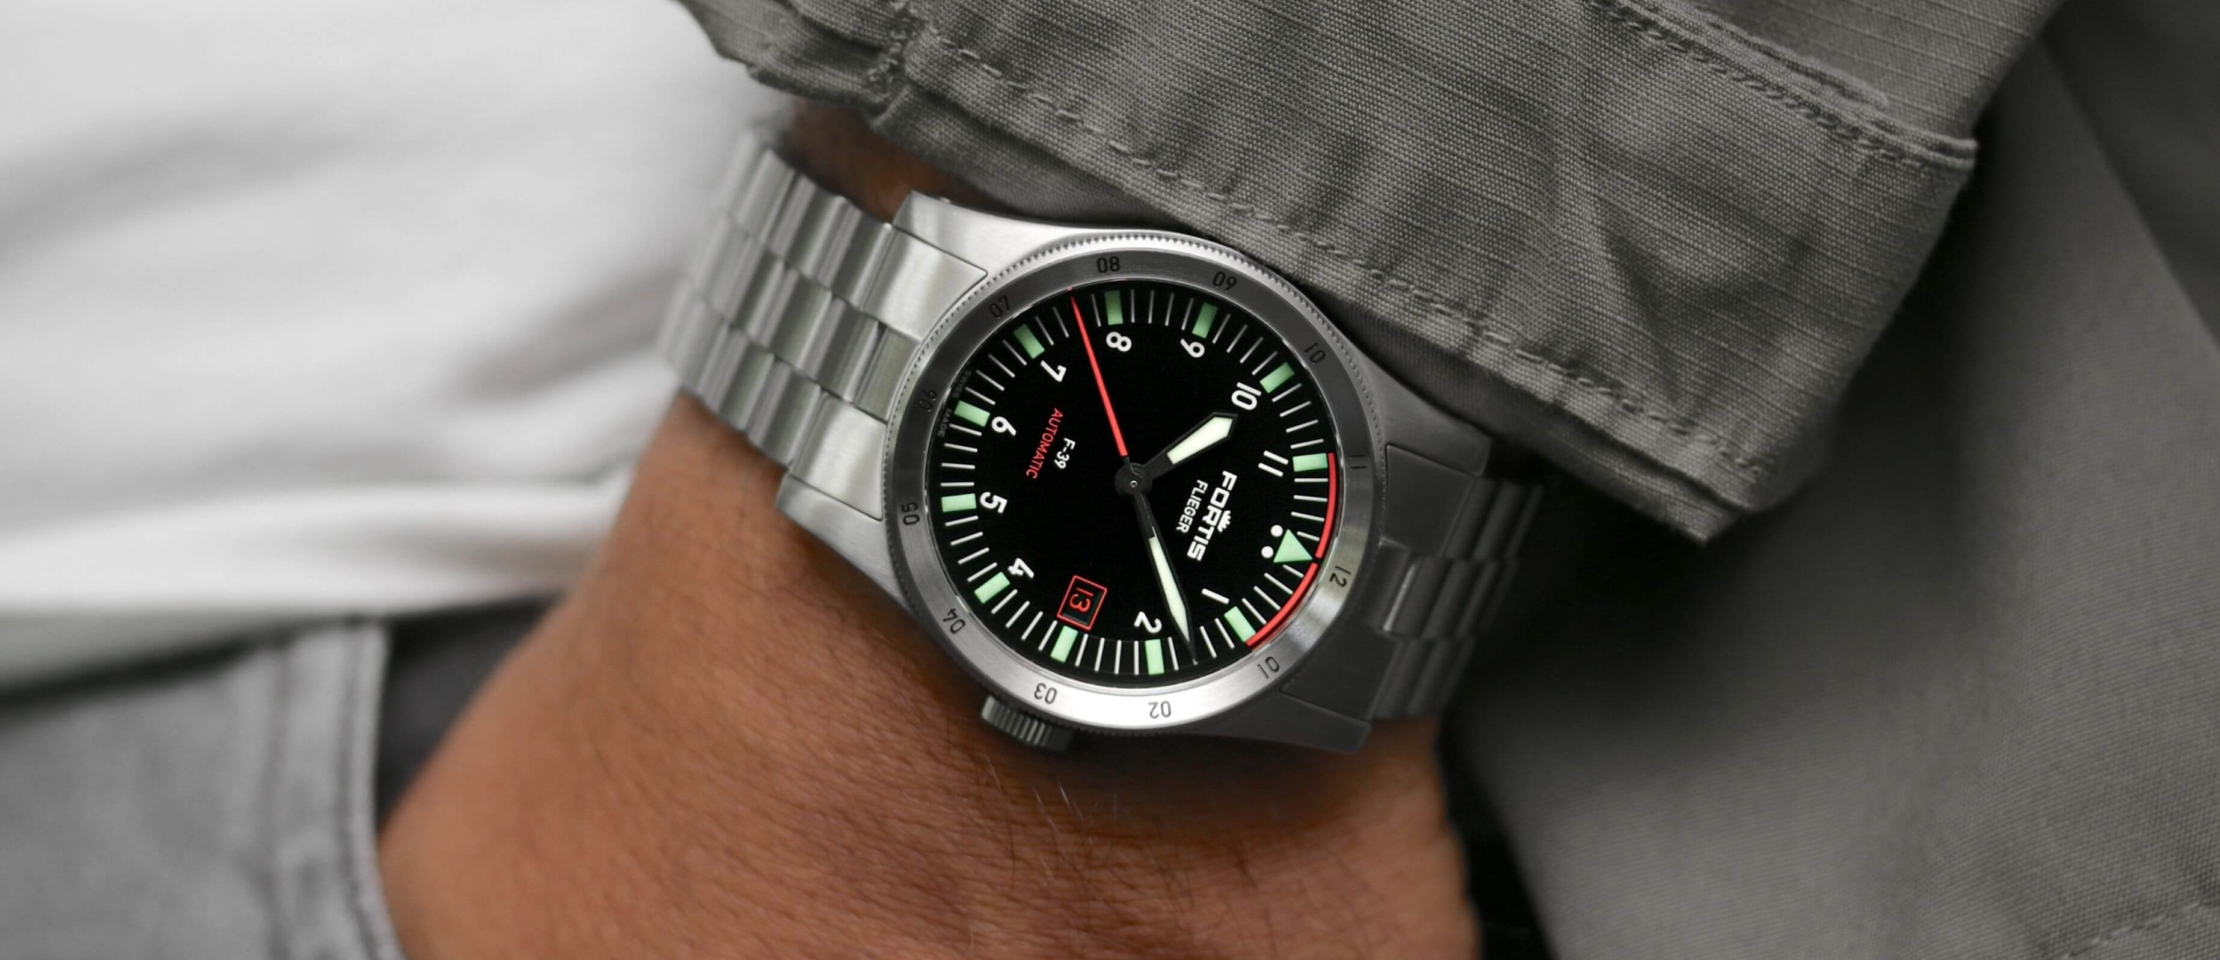 Simplicity is King: Fortis expands its Flieger collection with F-39 and F-41 models